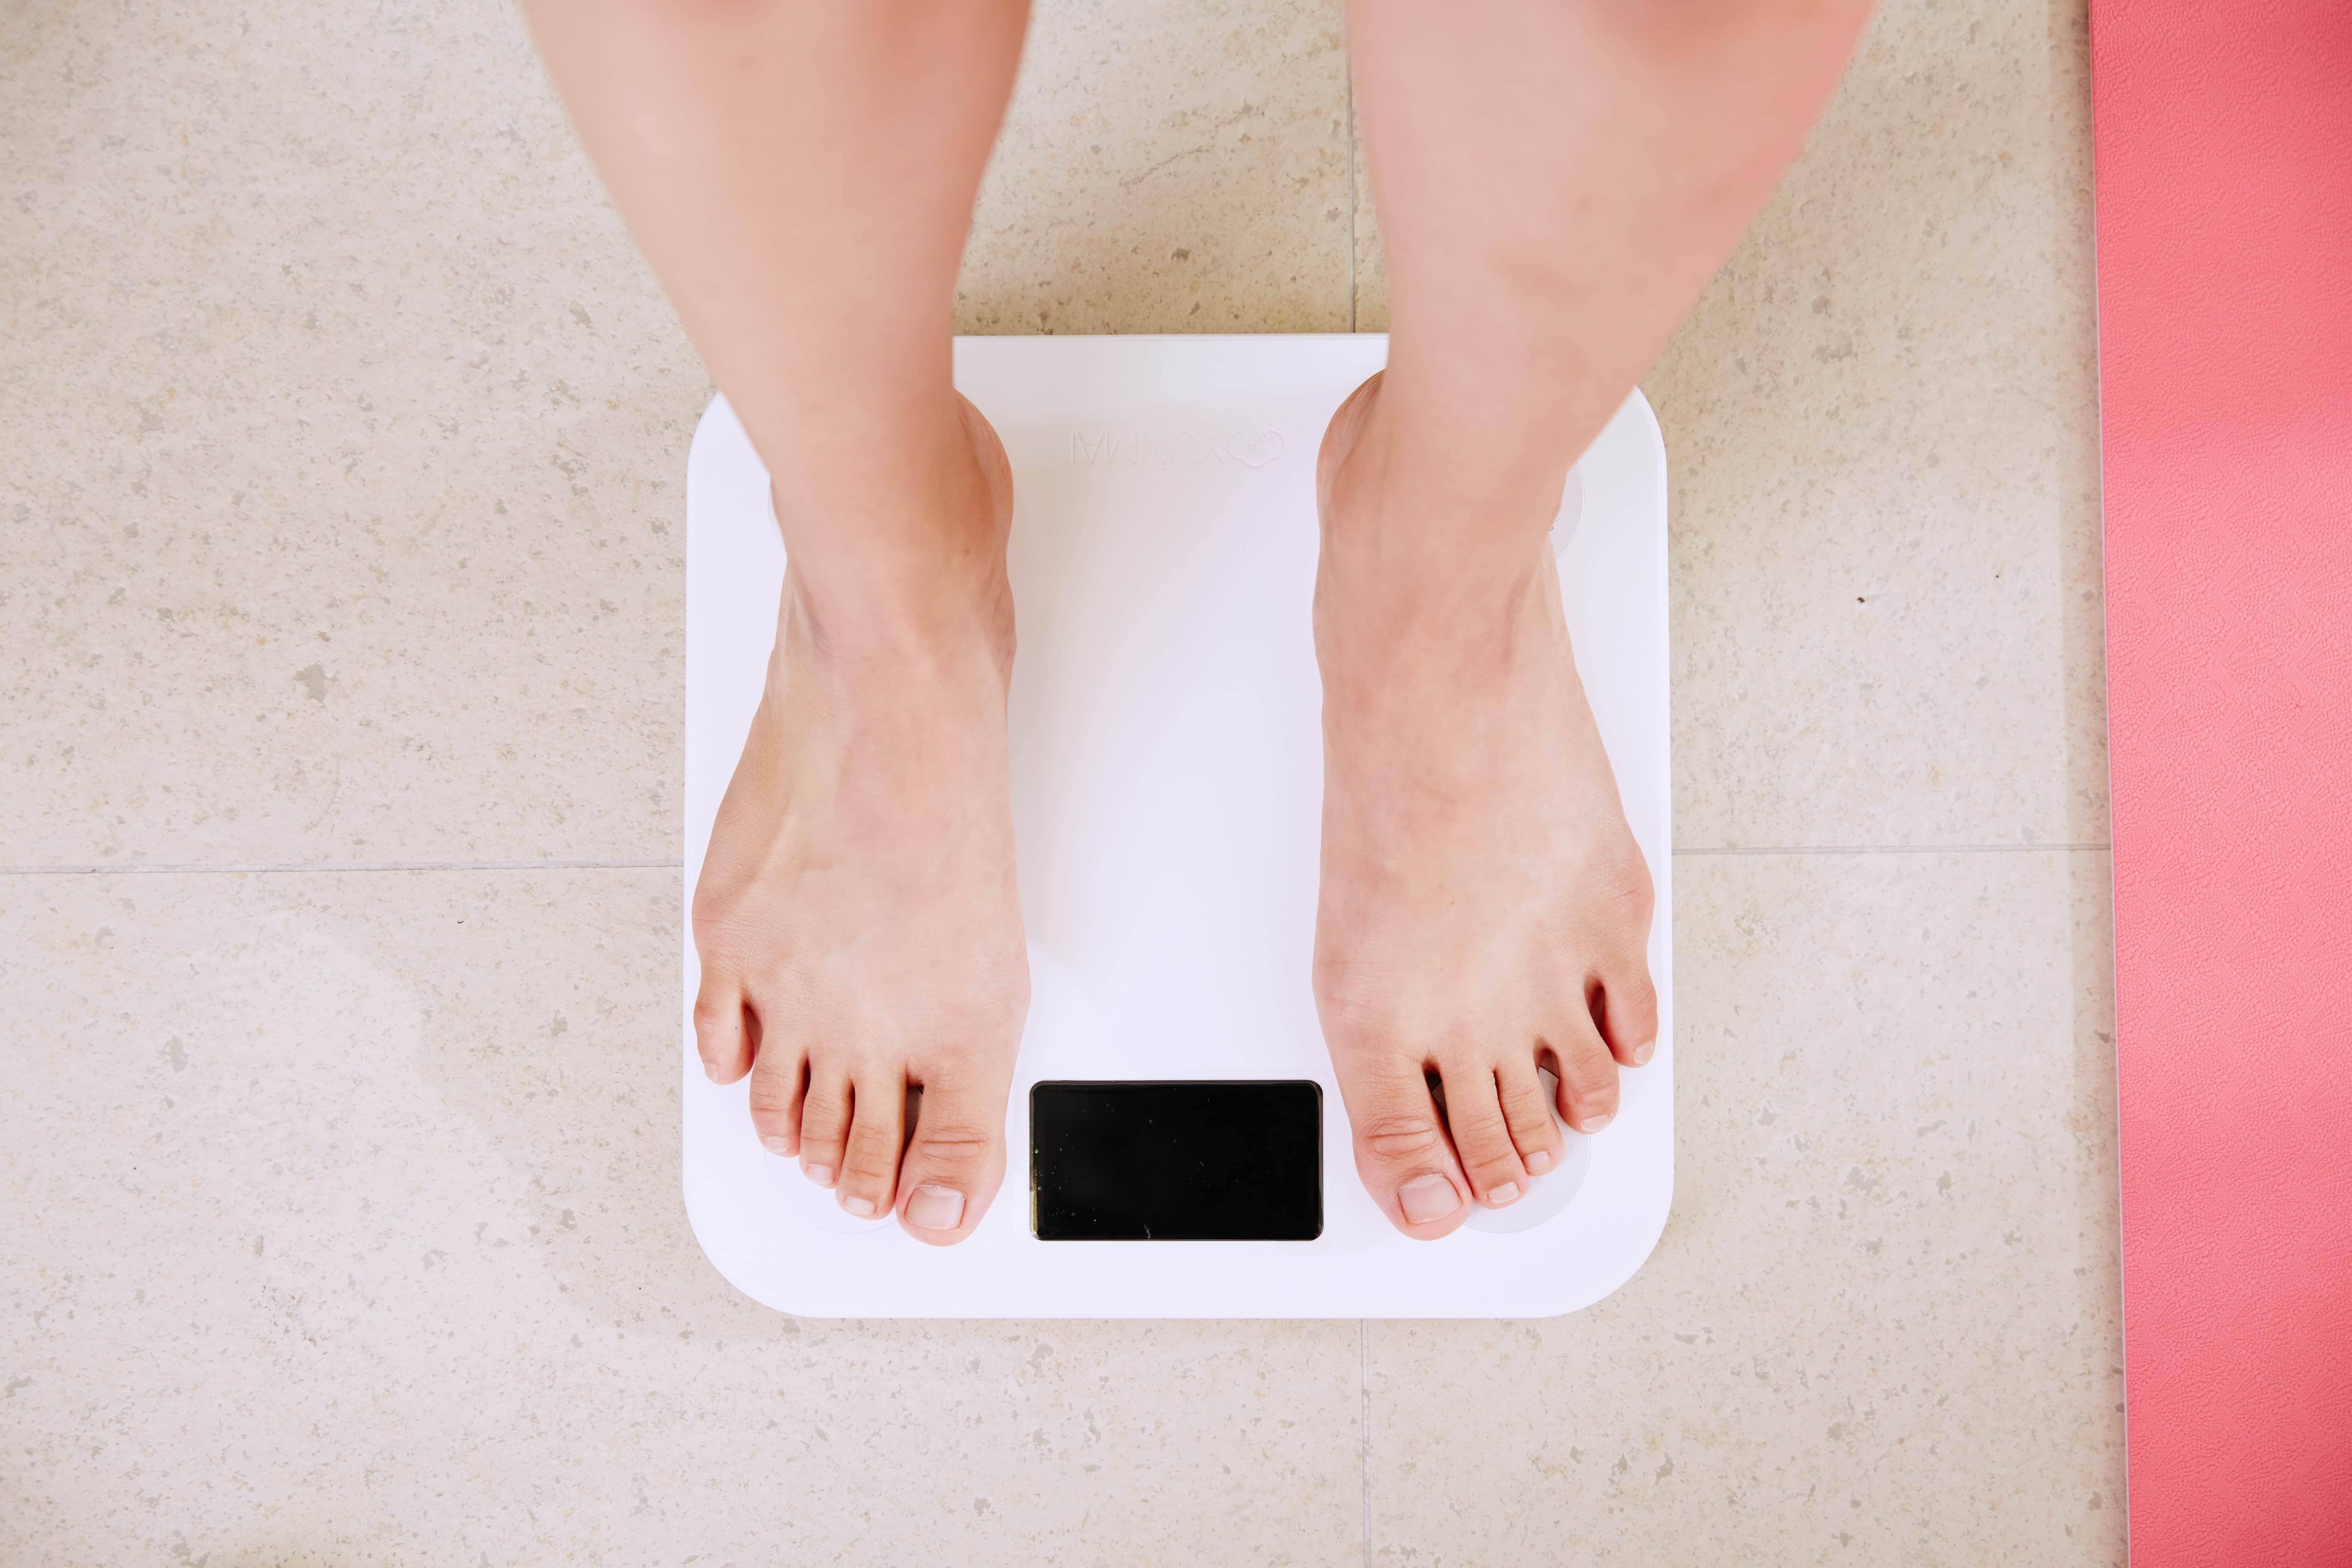 hypnosis for weight loss carlington